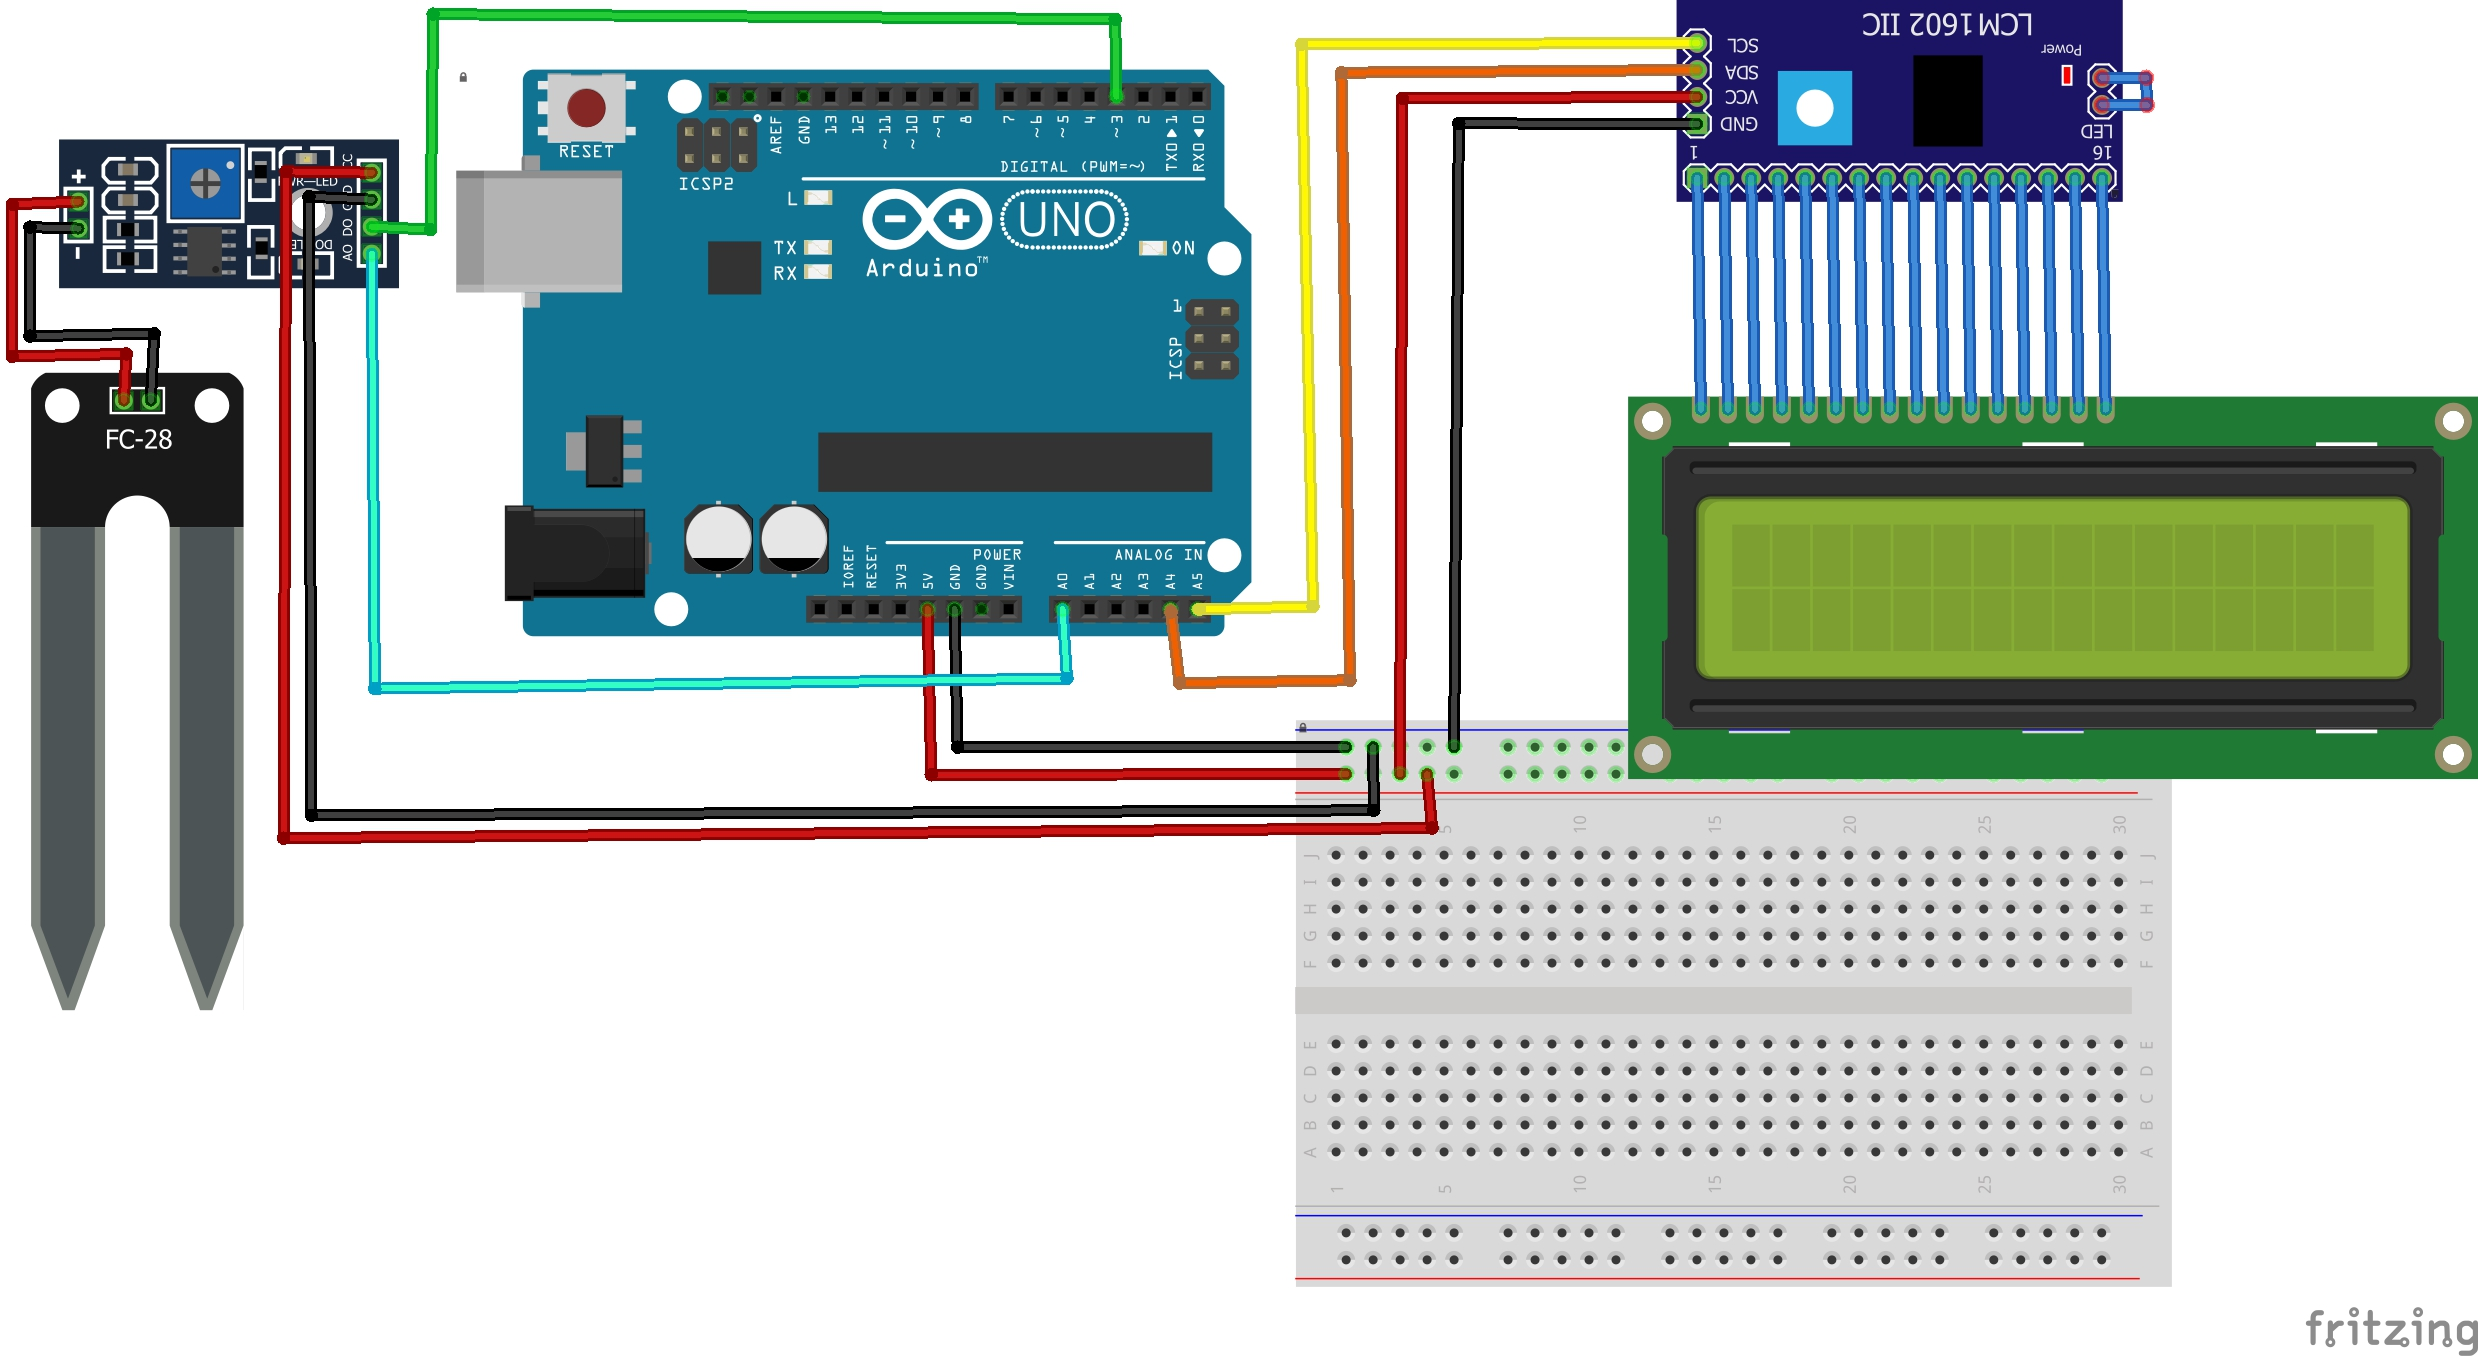 Use Arduino to detect soil moisture and display daga in 16x2 LCD